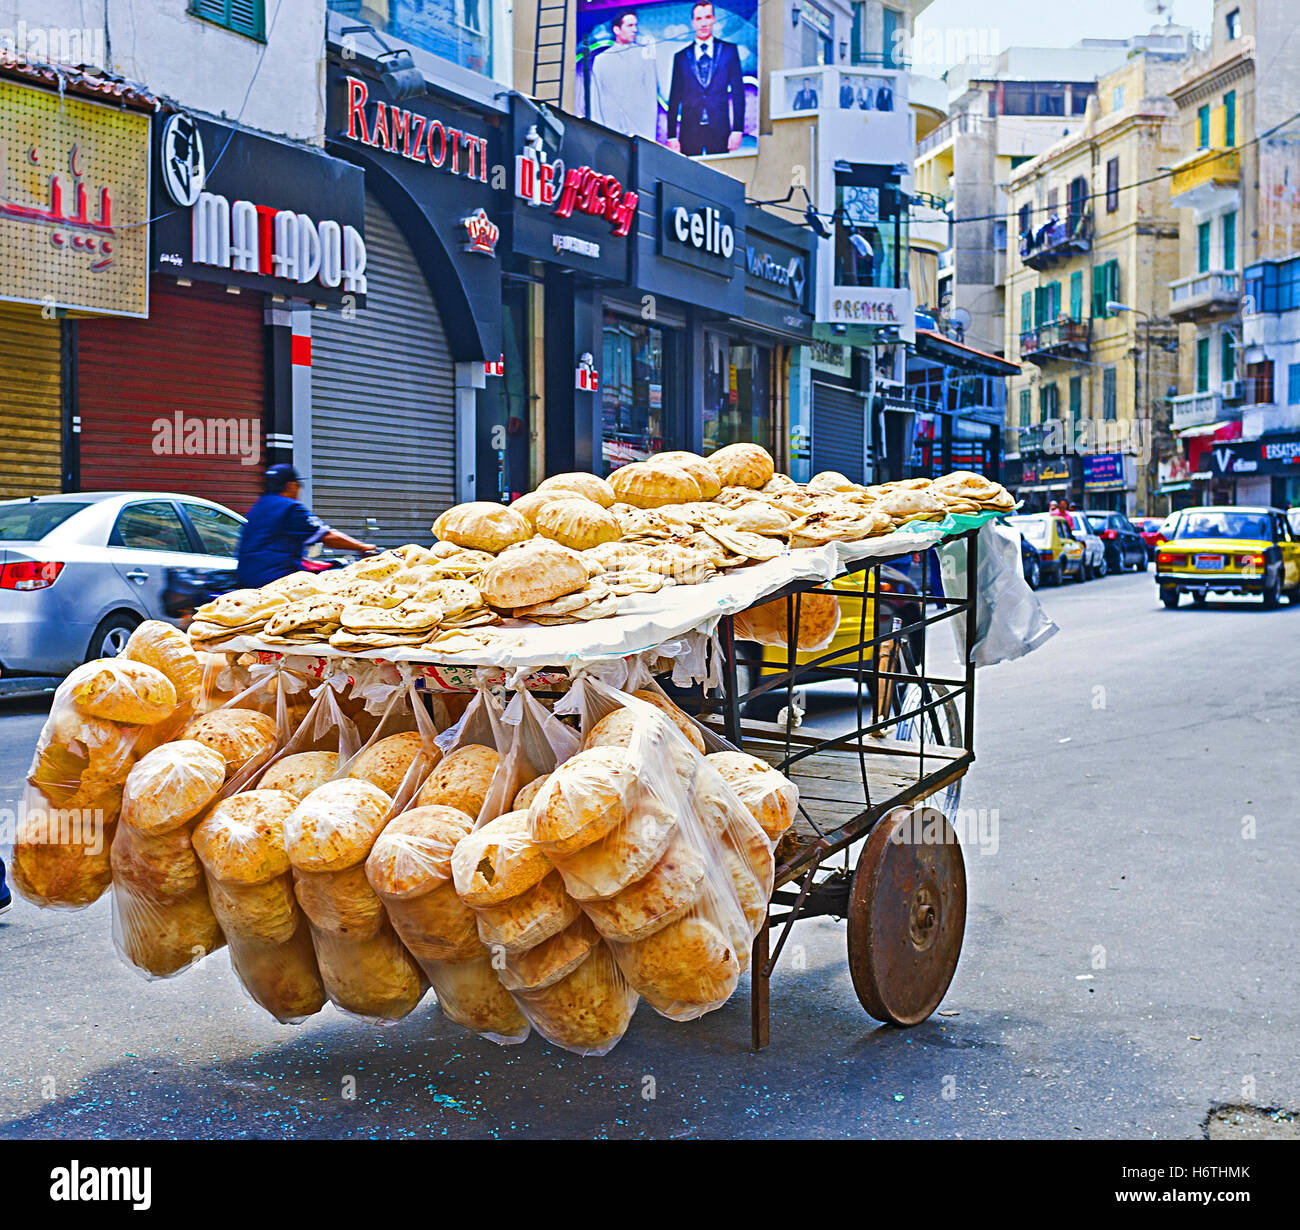 The old cart with the flat bread stands in the middle of the shopping street - Stock Image